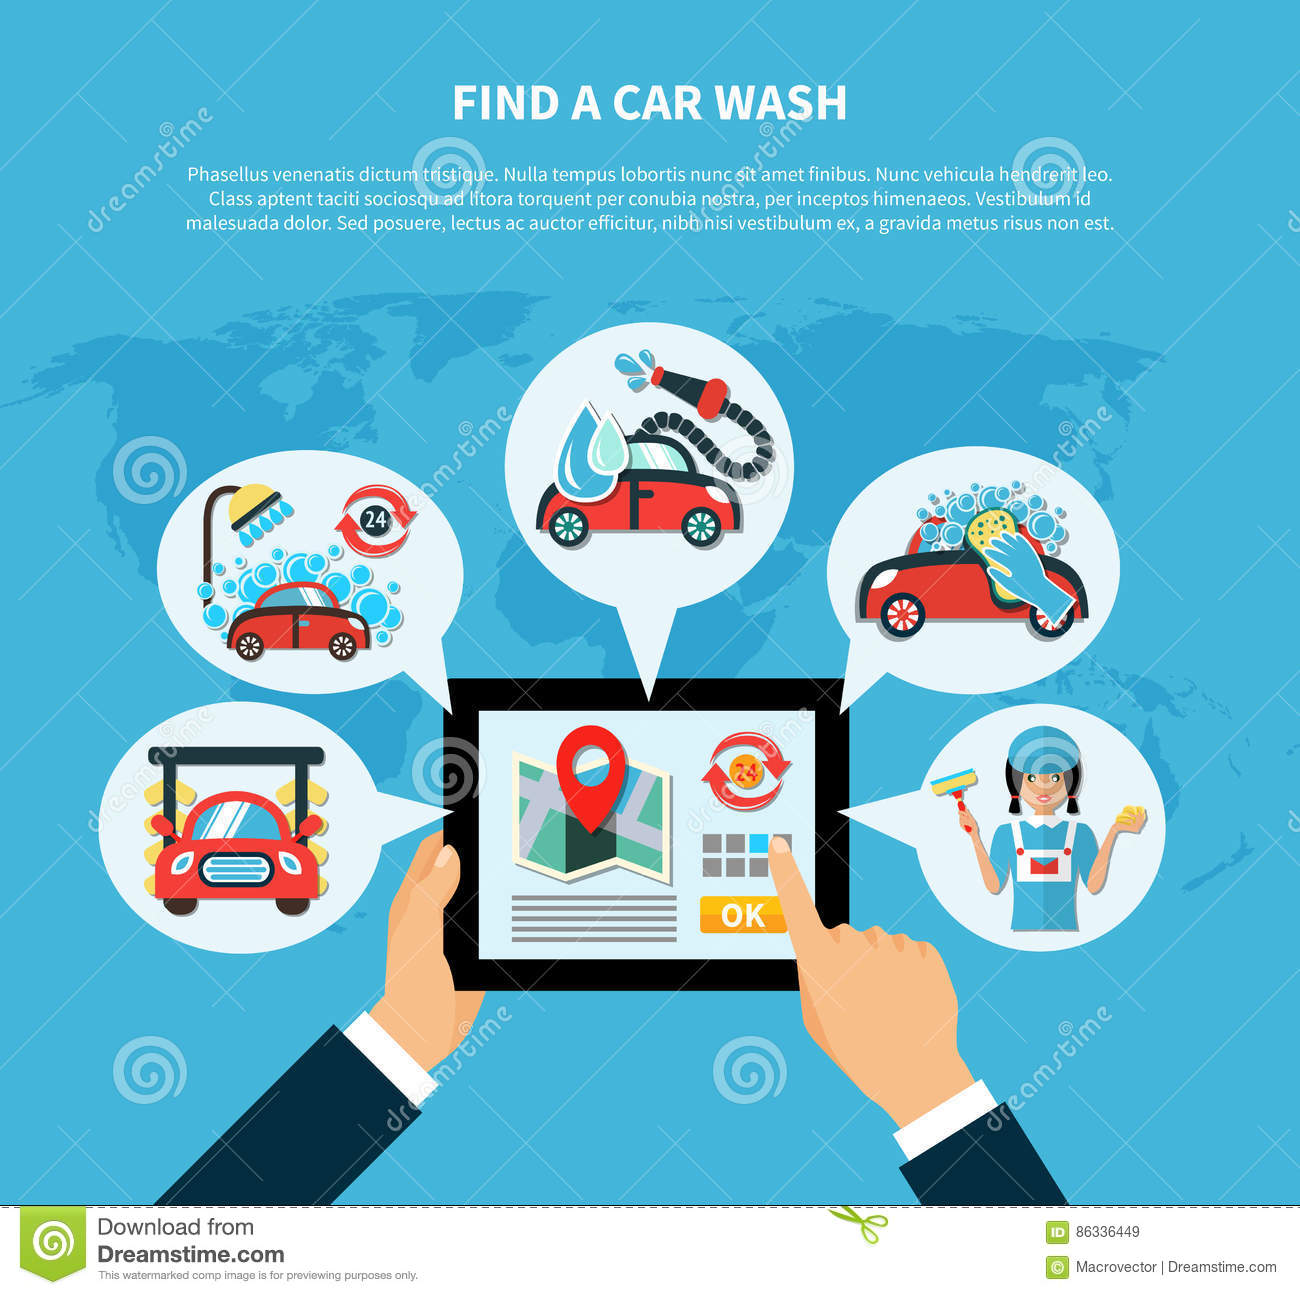 Car Wash Finder Concept Stock Vector Illustration Of Communication